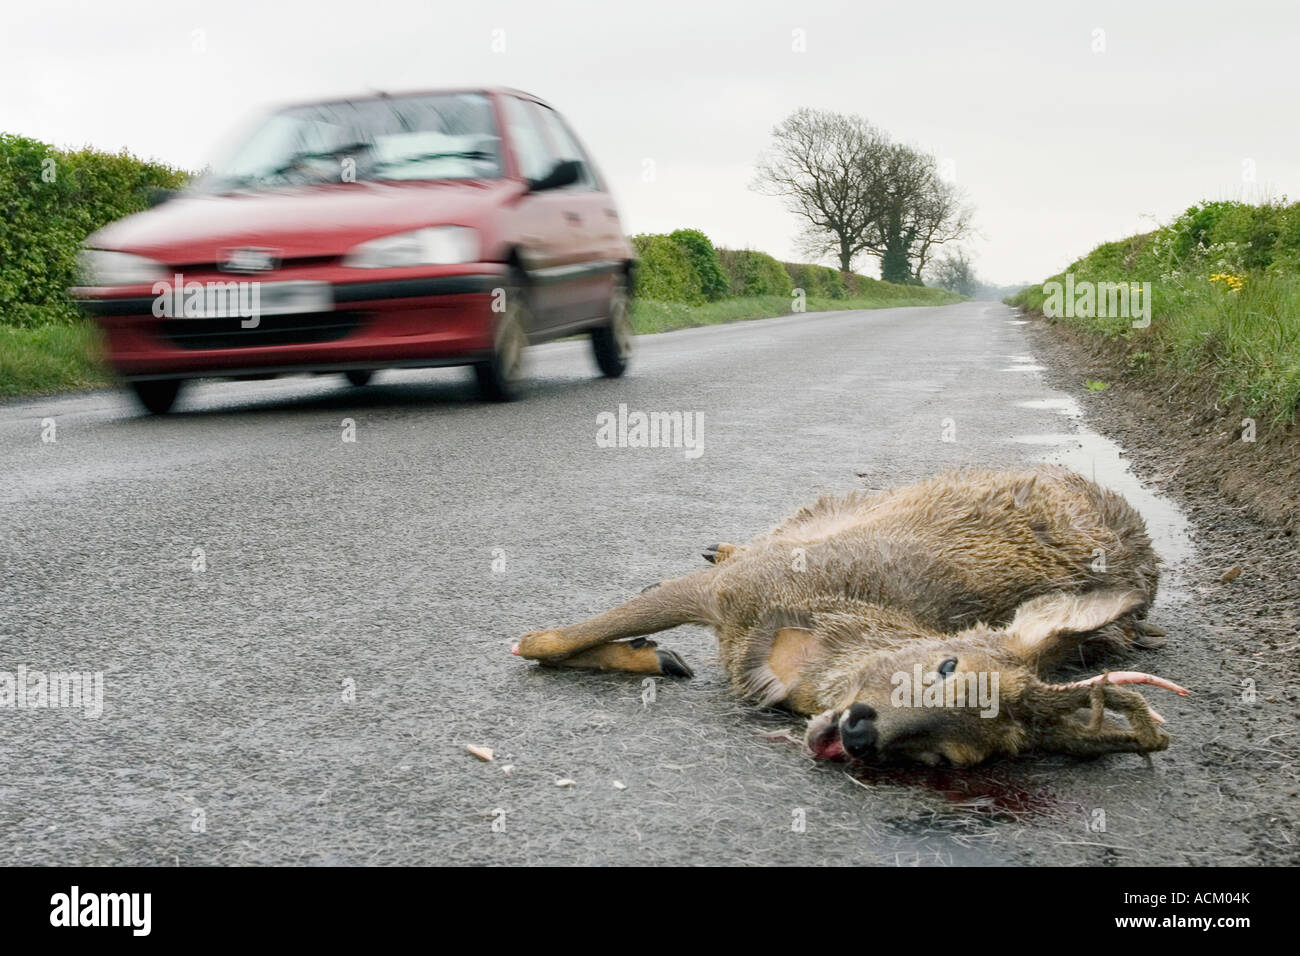 Injury Killed Hit Traffic Sad Countryside Stock Photos & Injury ...